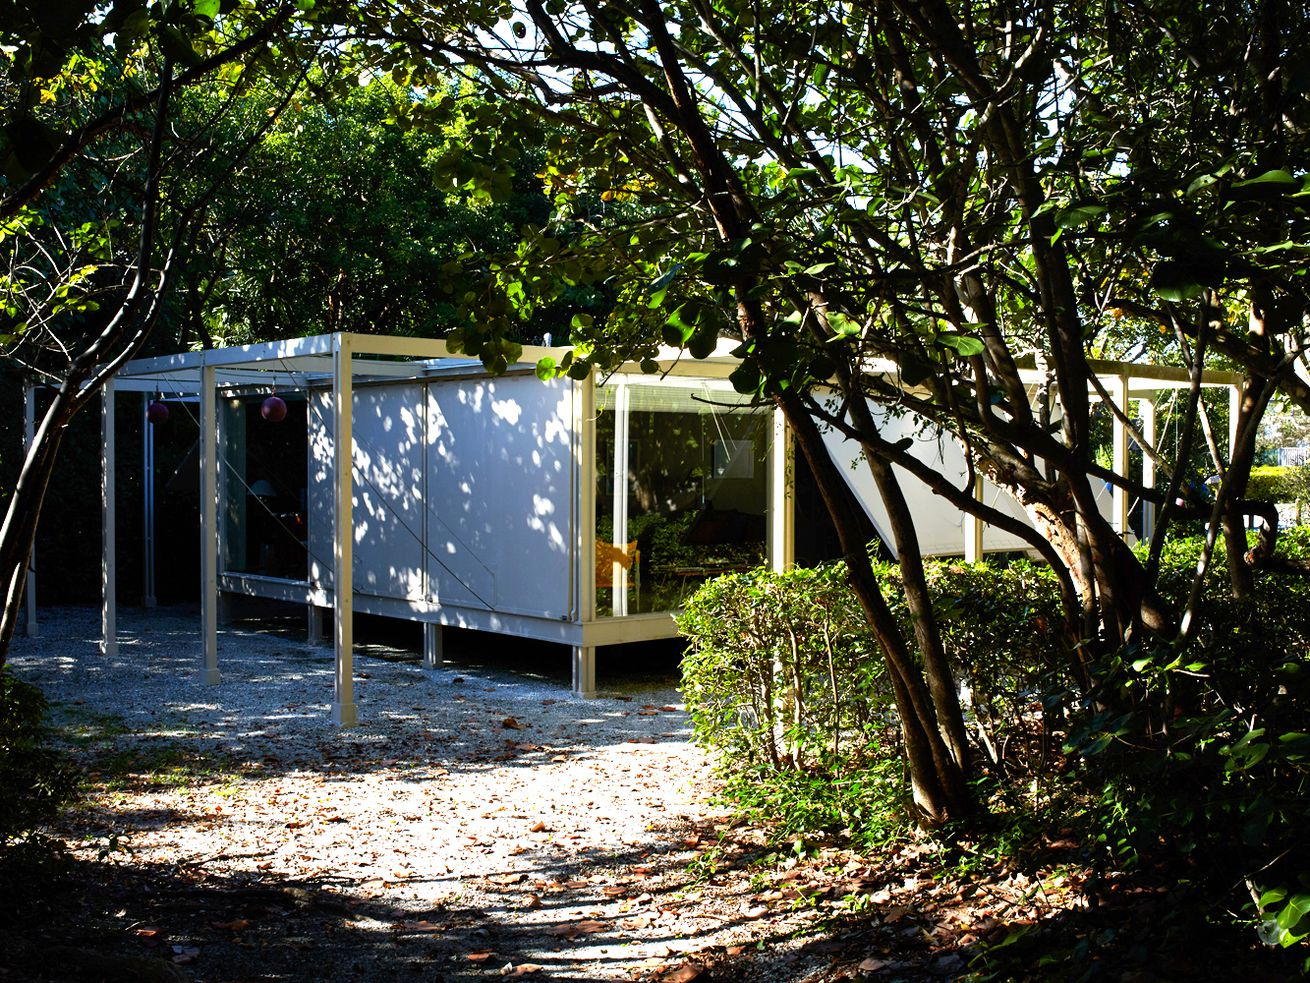 Paul Rudolph's 1952 Walker Guest House in Sanibel Island, Florida, photographed in 2015.